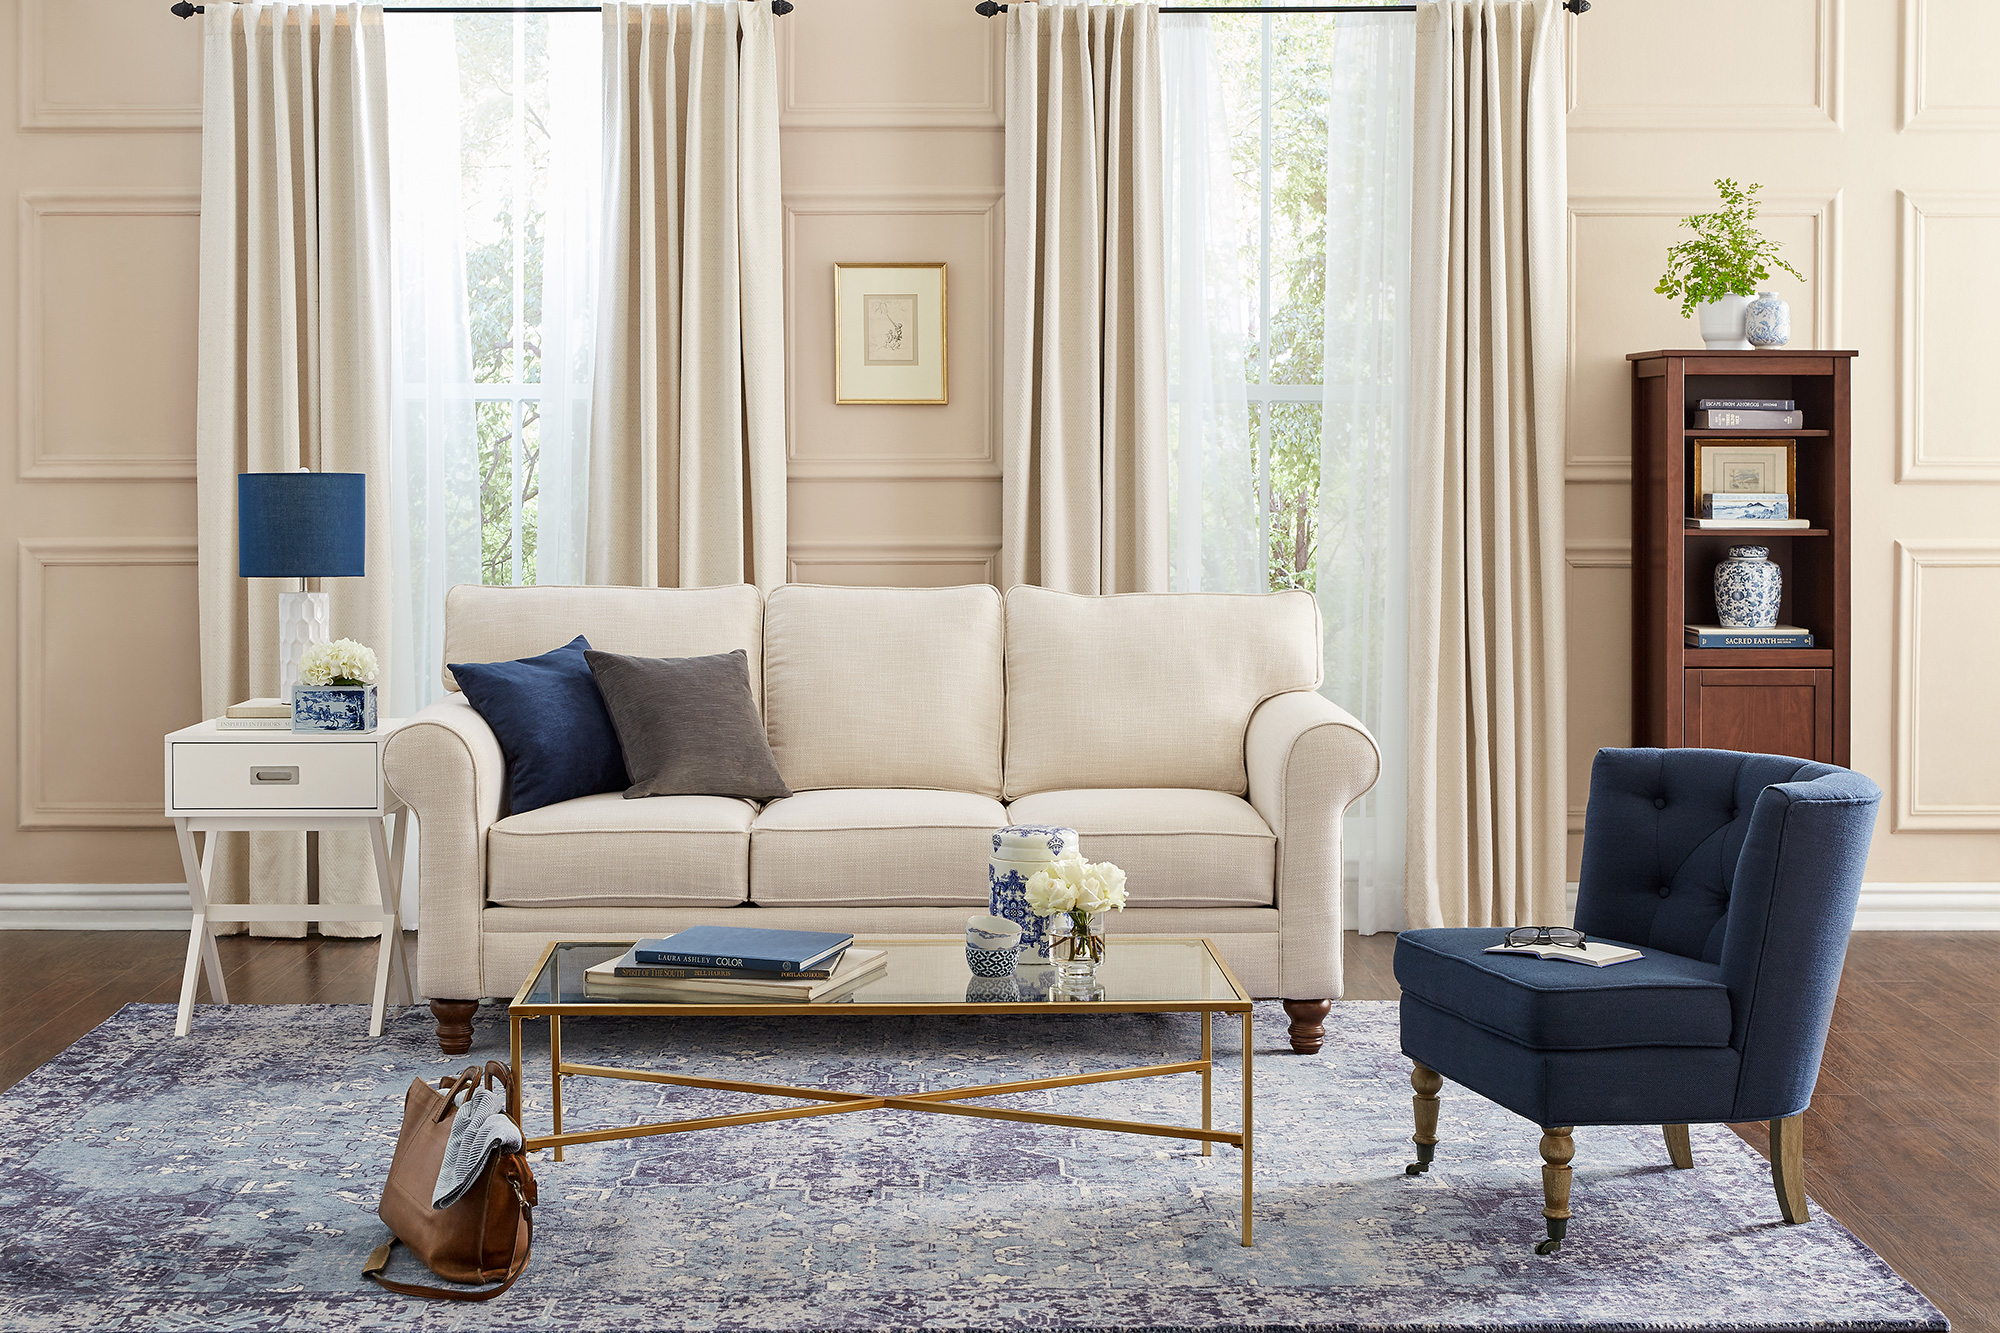 amazing margate coffee table ravenna home living target accent launches its own furnishings collection take peek the affordable items croscill shower curtains narrow sofa west elm